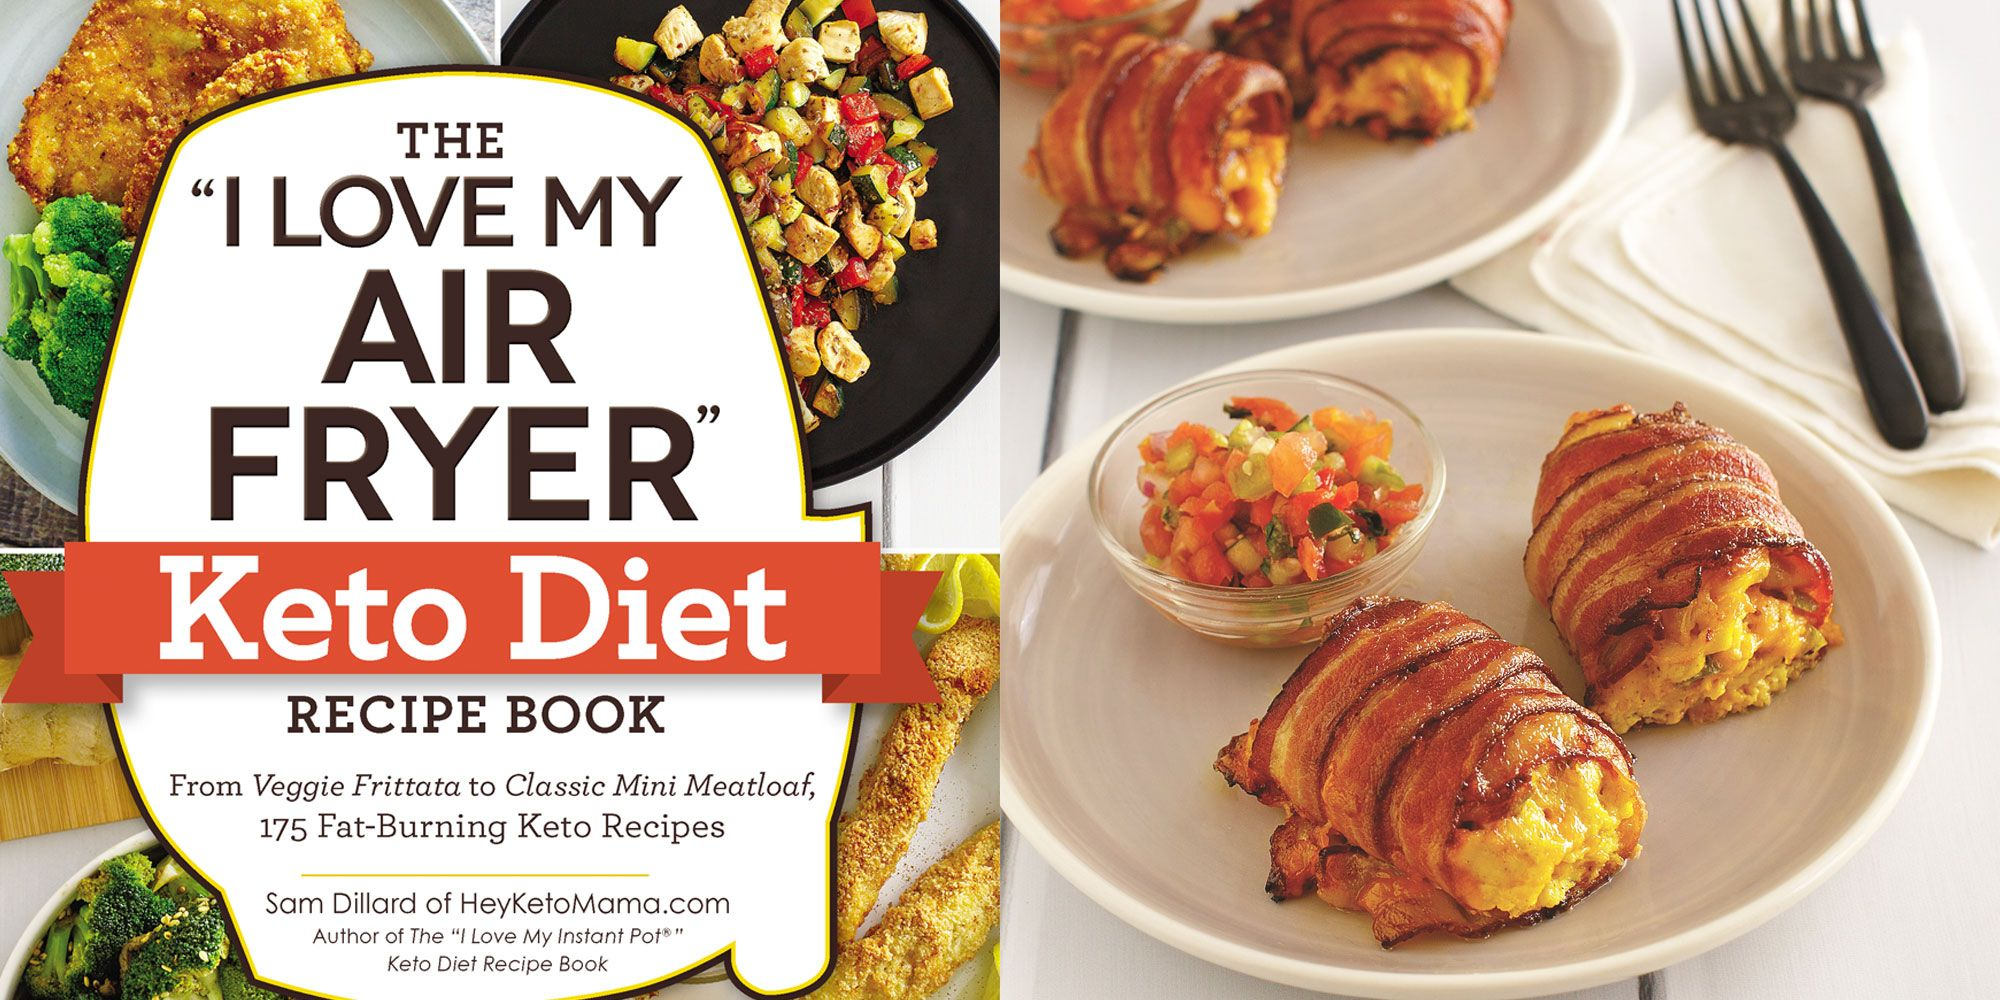 The I Love My Air Fryer Keto Diet Recipe Book Is Full Of Easy Keto Meals